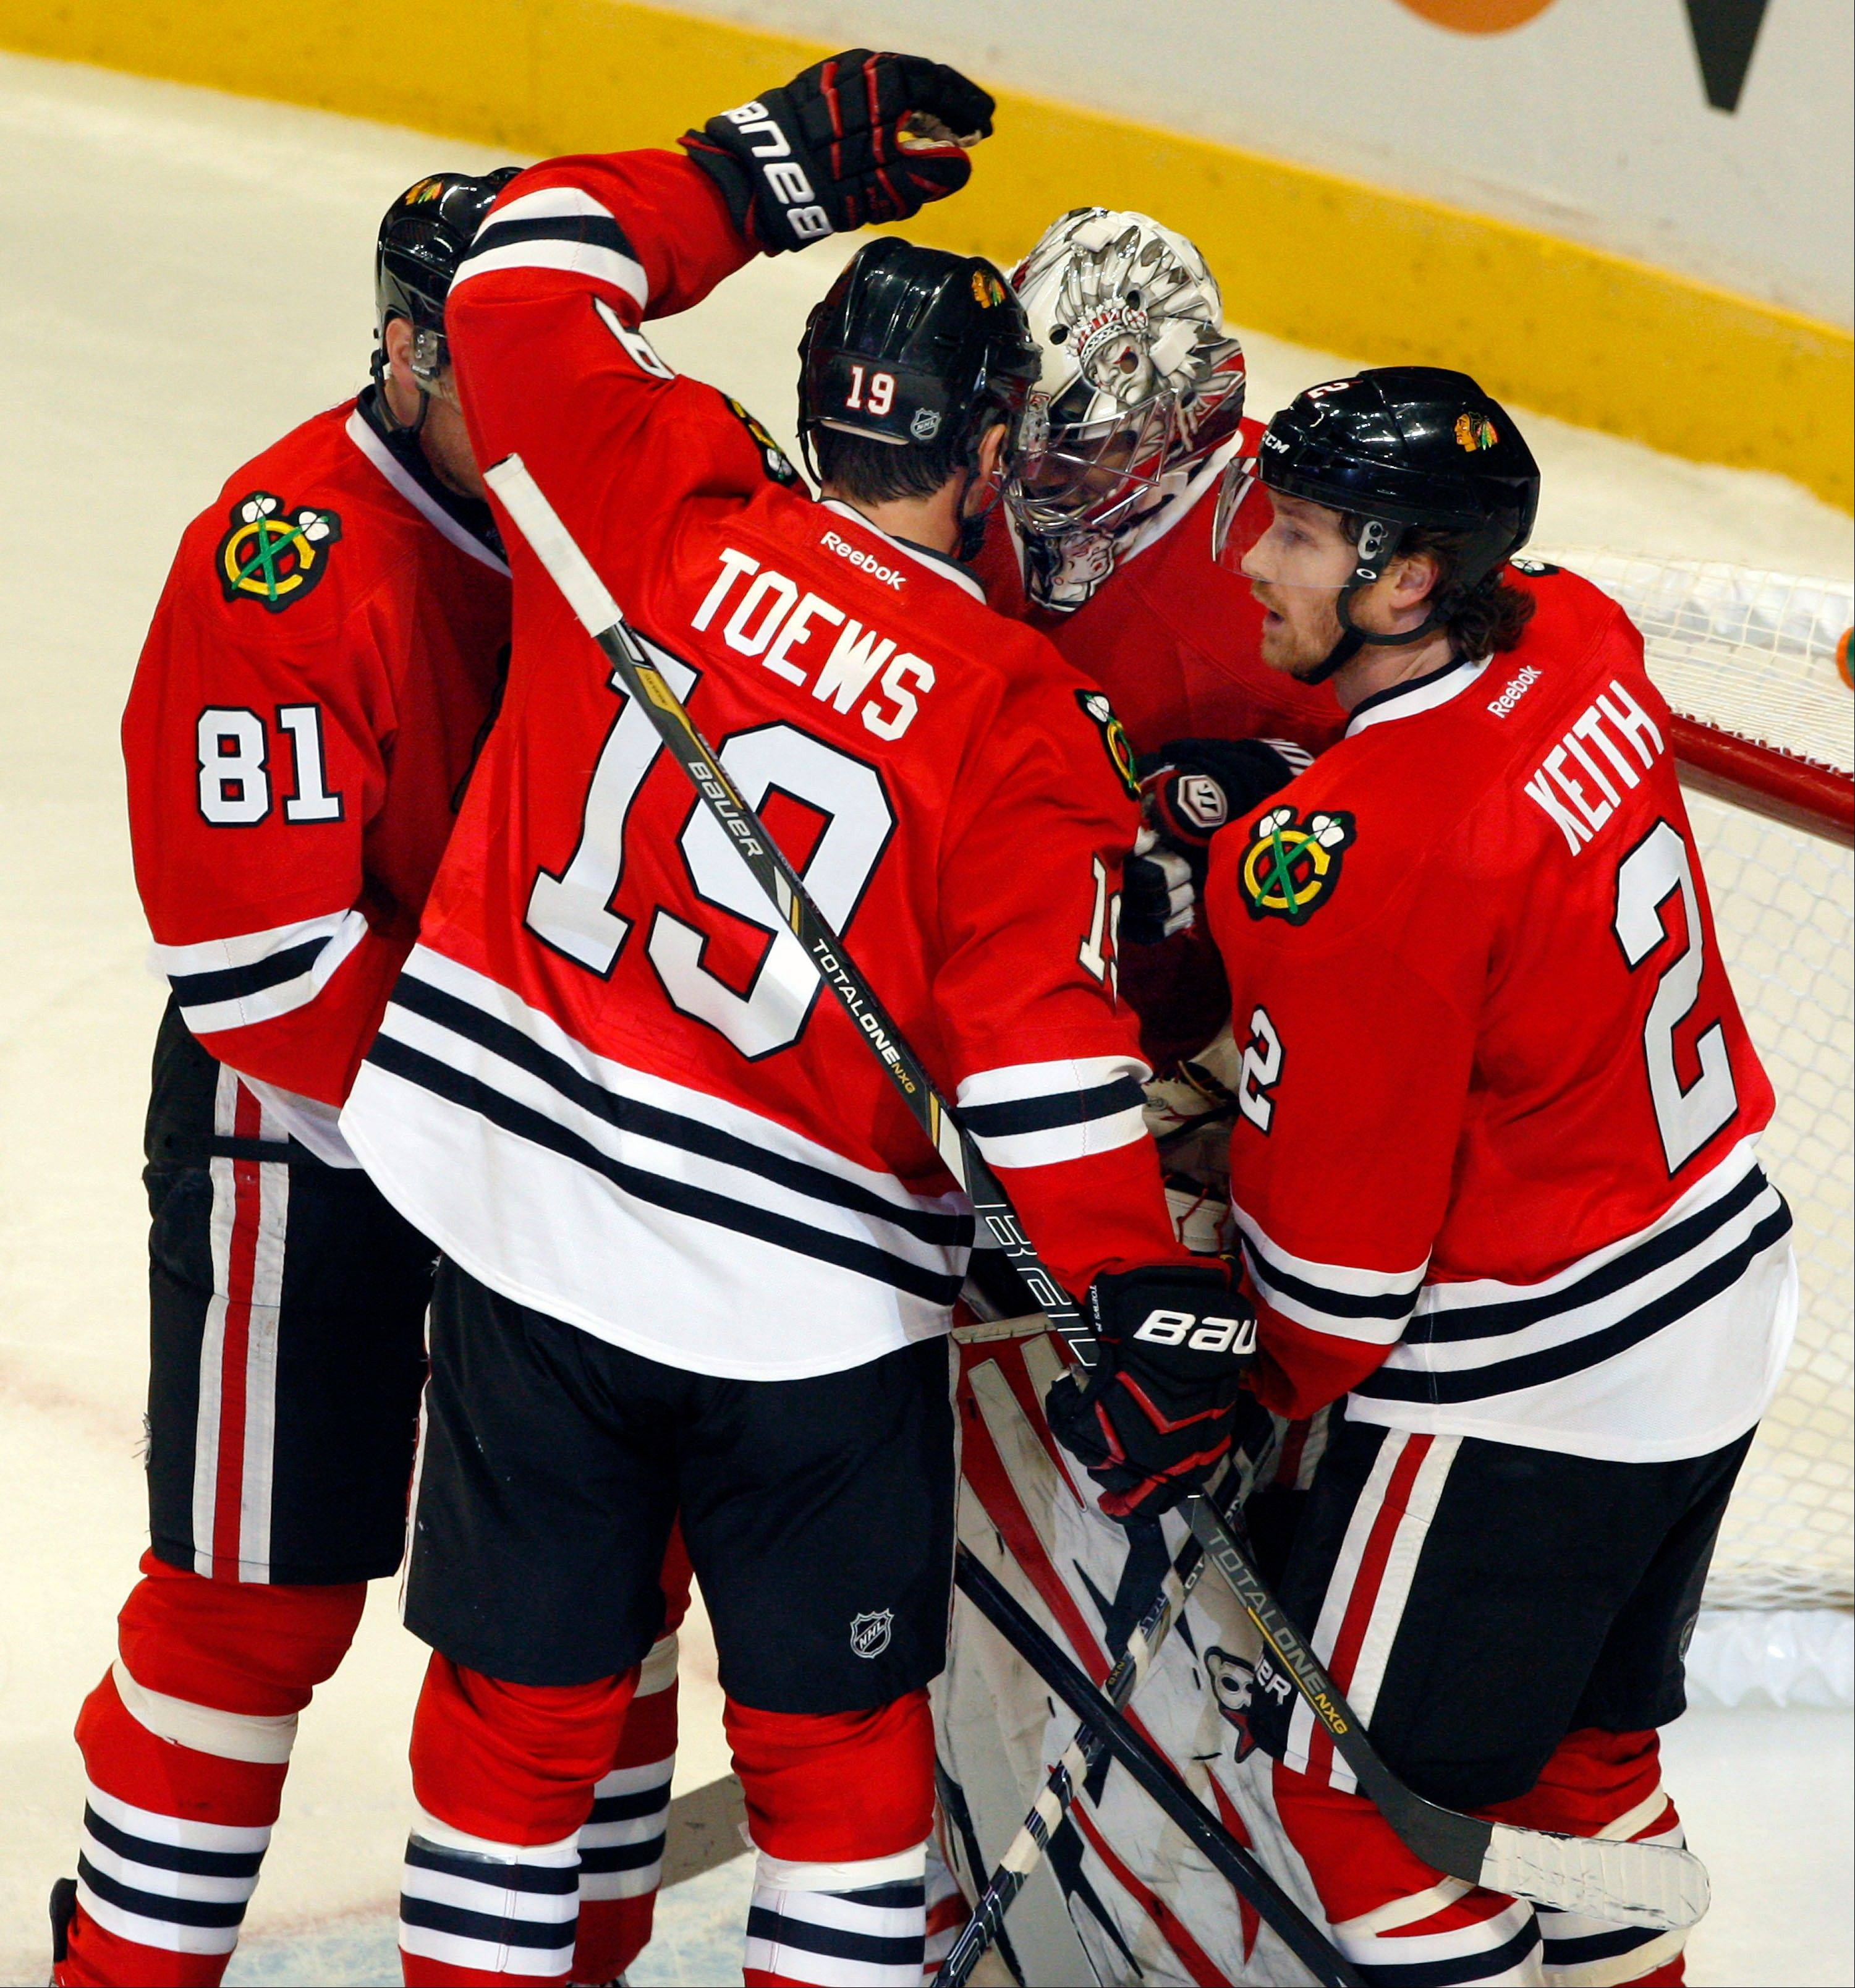 Marian Hossa (81), Jonathan Toews (19) and Duncan Keith (2) congratulate goalie Ray Emery after the Blackhawks� 3-2 victory Sunday over the Kings.